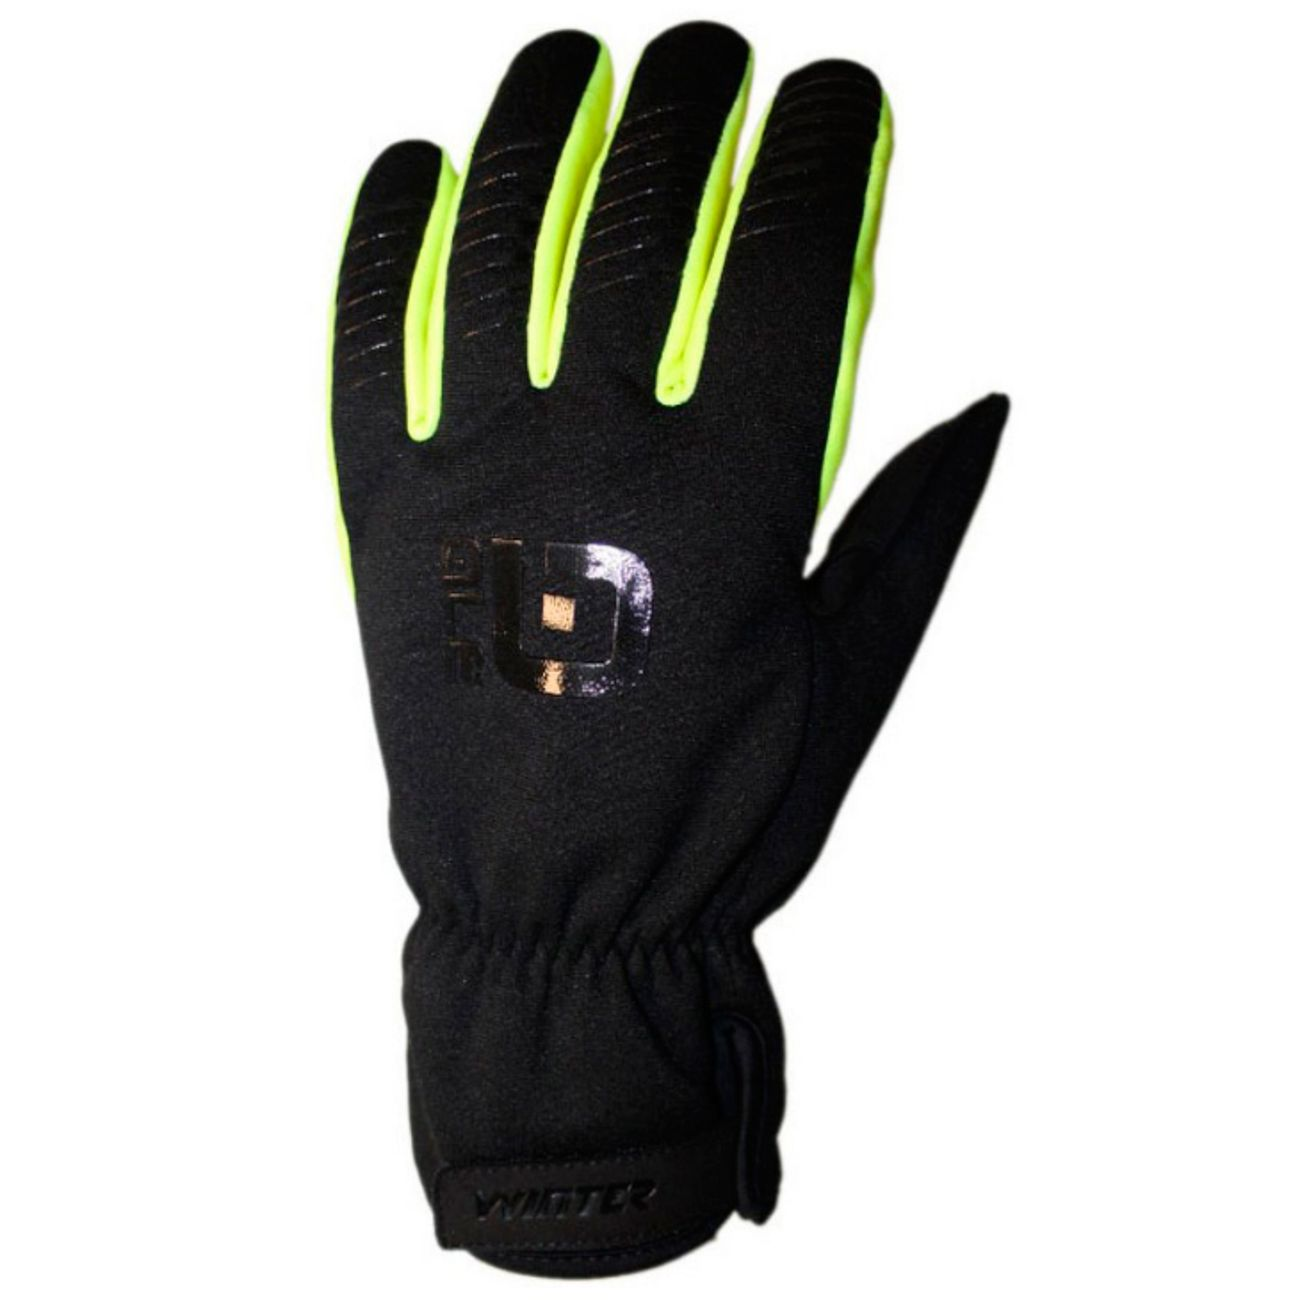 Cycle homme ALE Ale Winter Glove Tactil